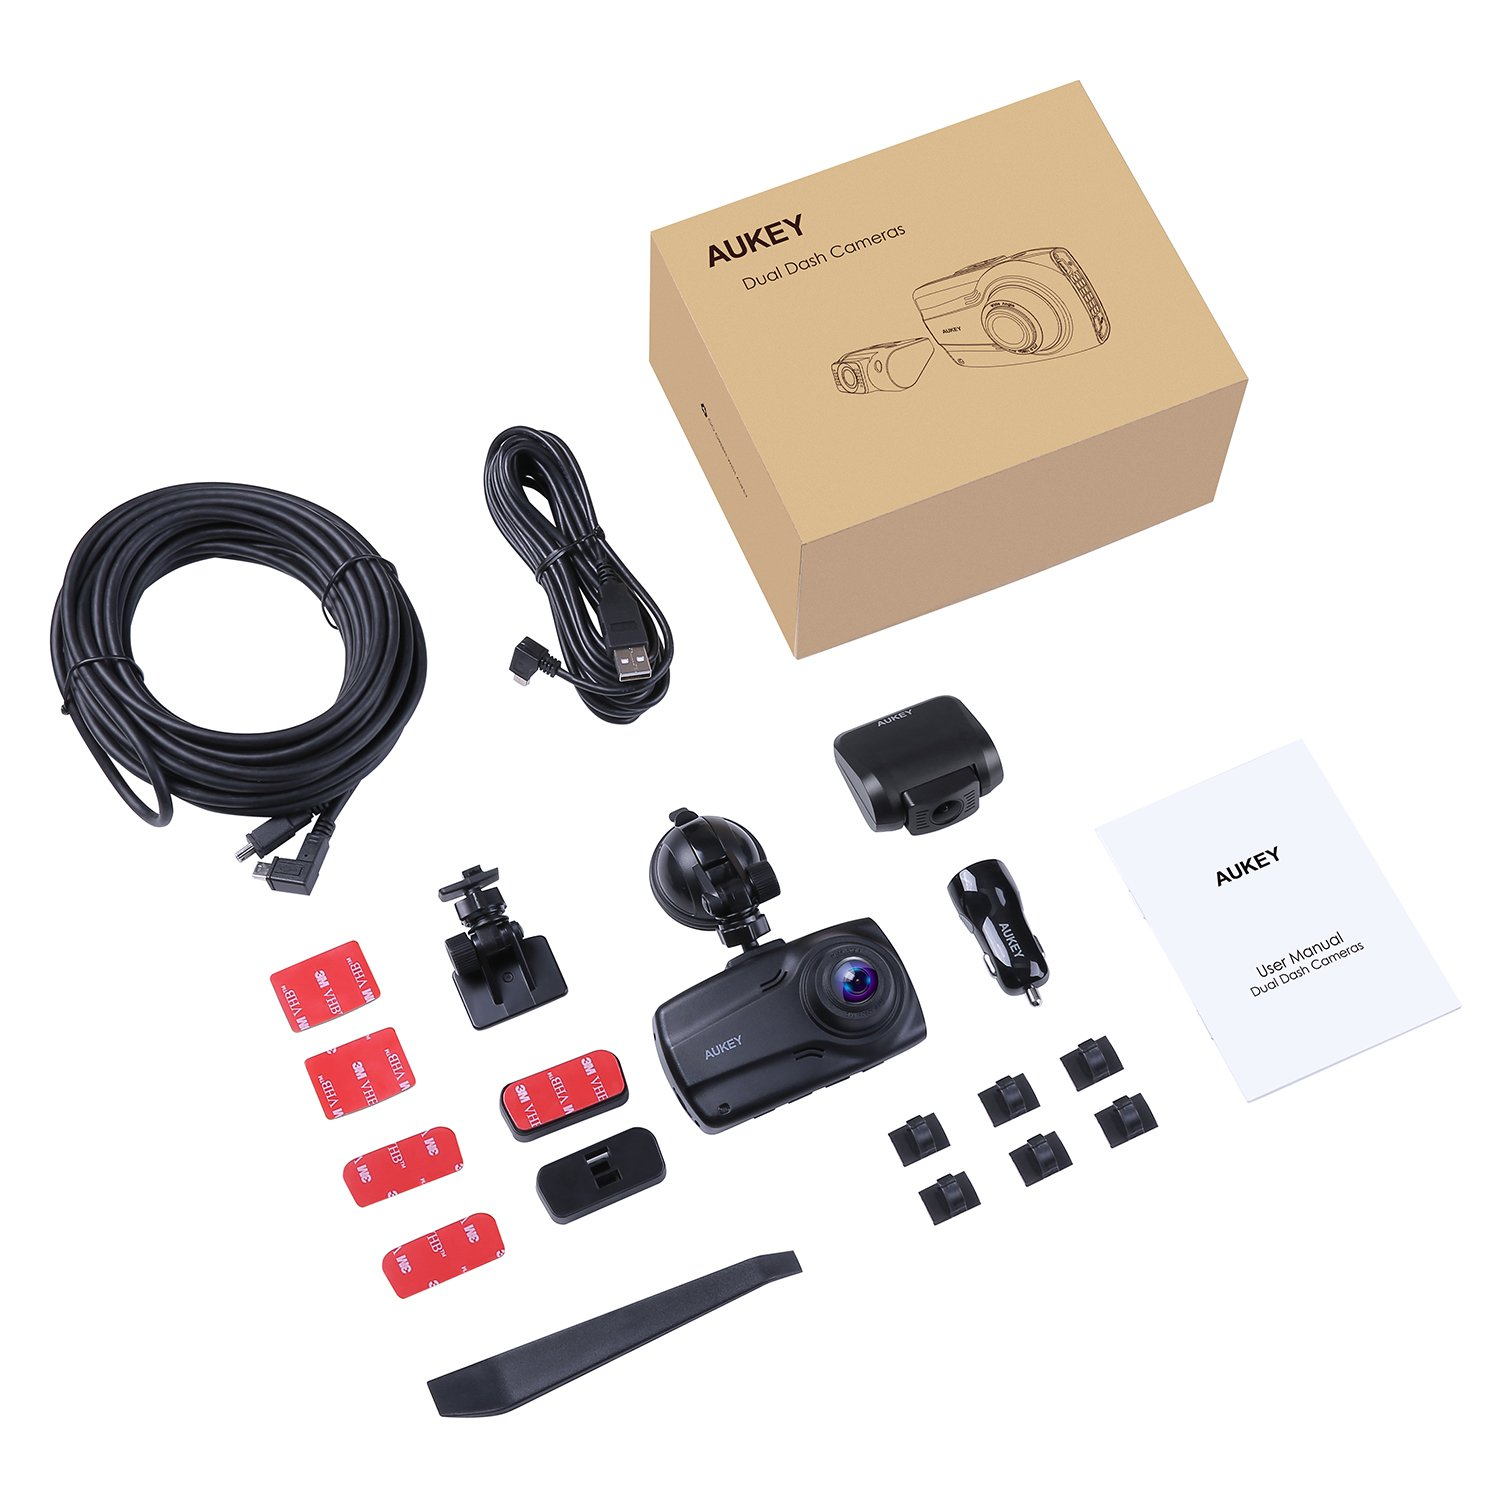 """AUKEY 1080p Dual Dash Cams with 2.7"""" Screen, Full HD Front and Rear Camera, 6-Lane 170° Wide-Angle Lens, G-Sensor, and Dual-Port Car Charger by AUKEY (Image #8)"""